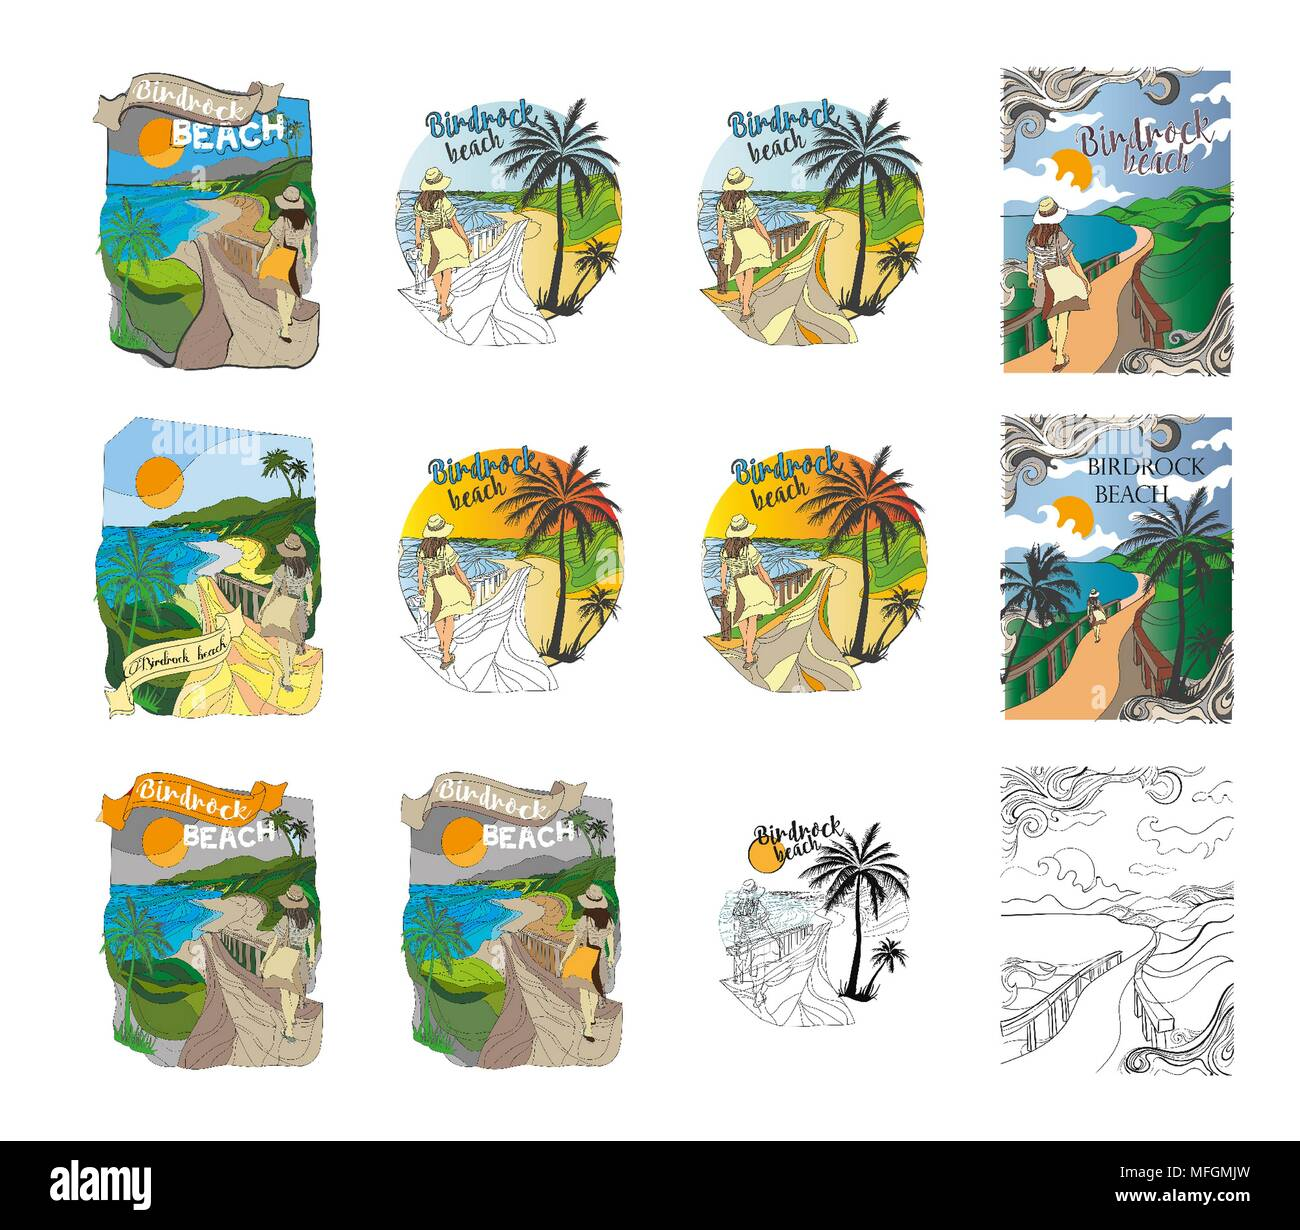 Illustration has rasterization issues such as blurriness and/or artifacting. Set ilustrations for kids books Stock Photo